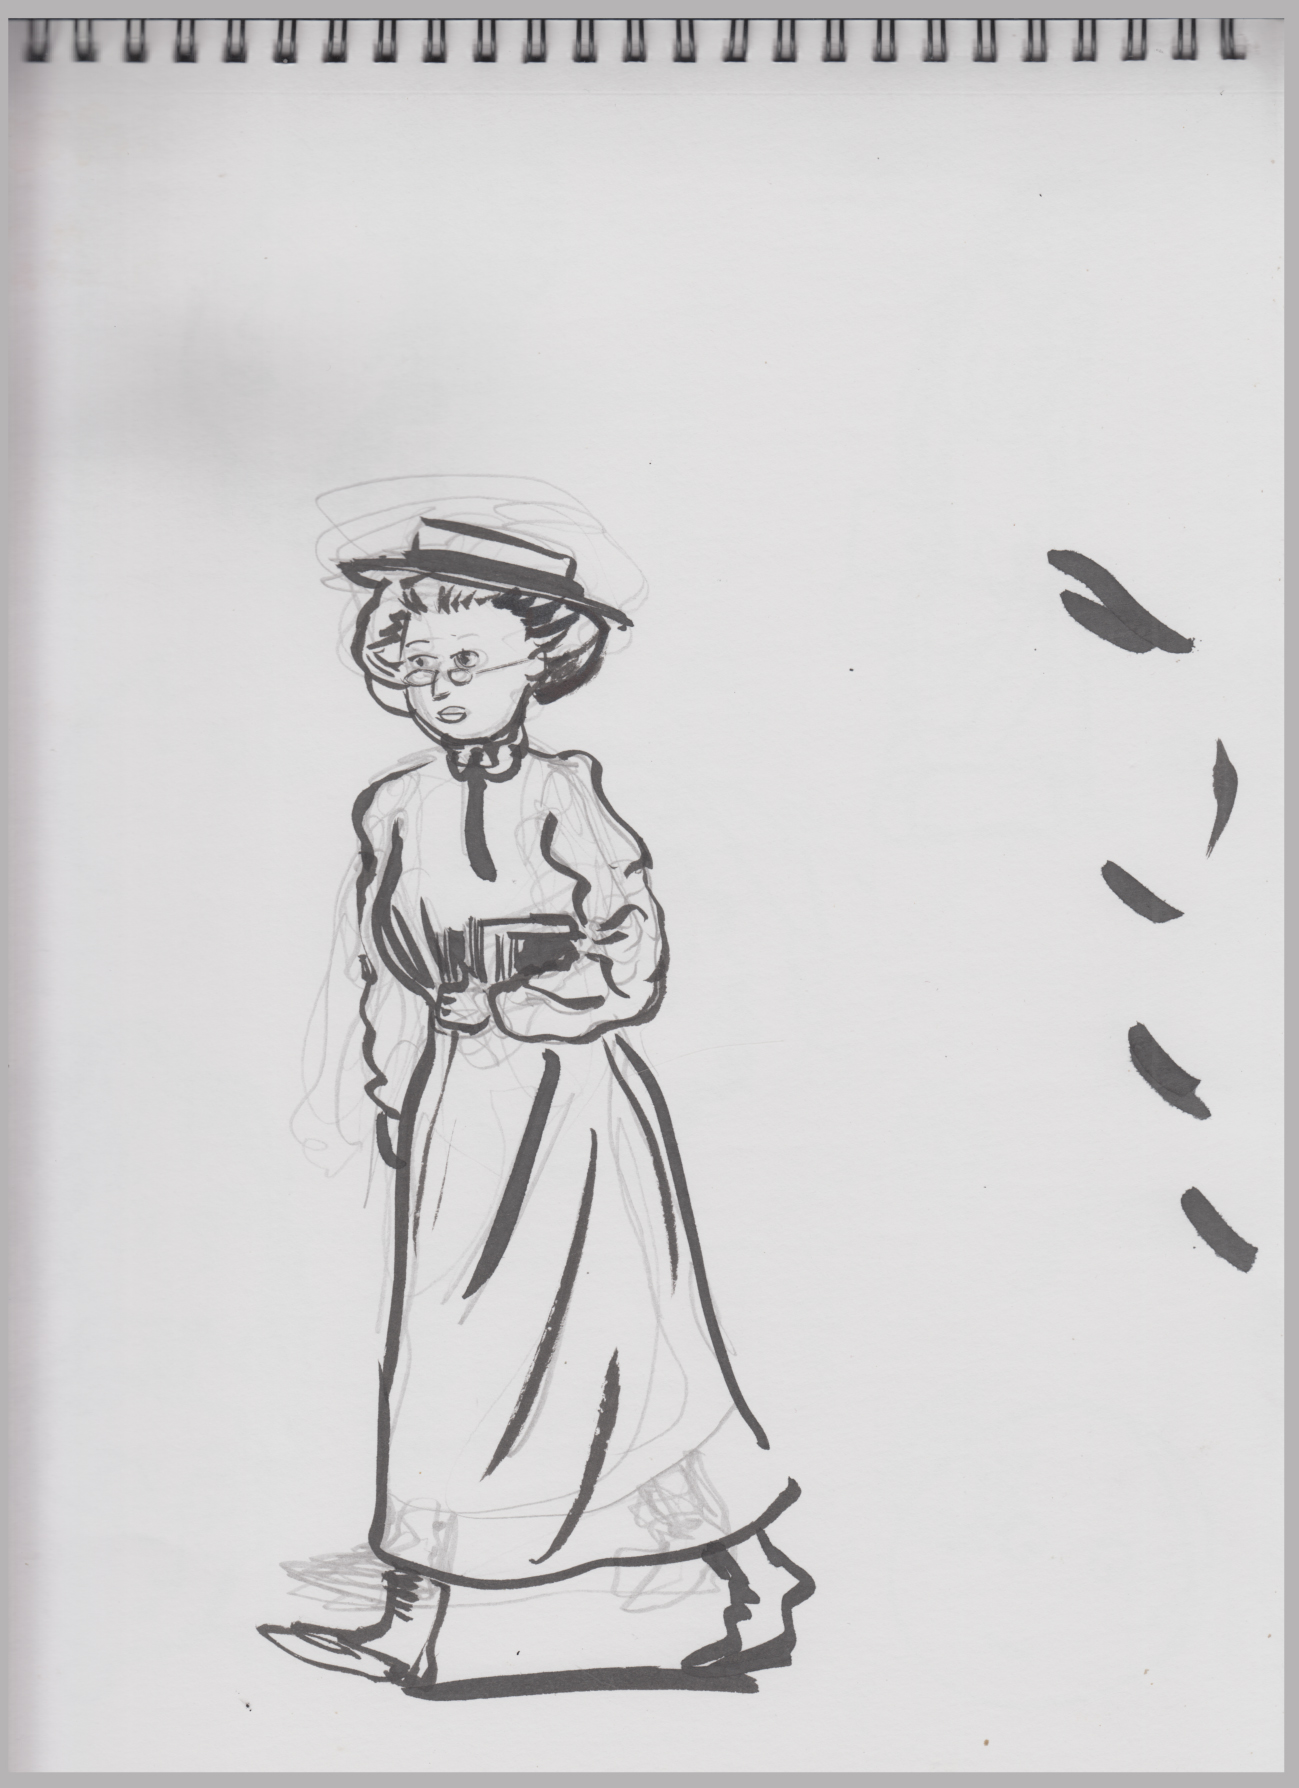 7-7-16 character sketch